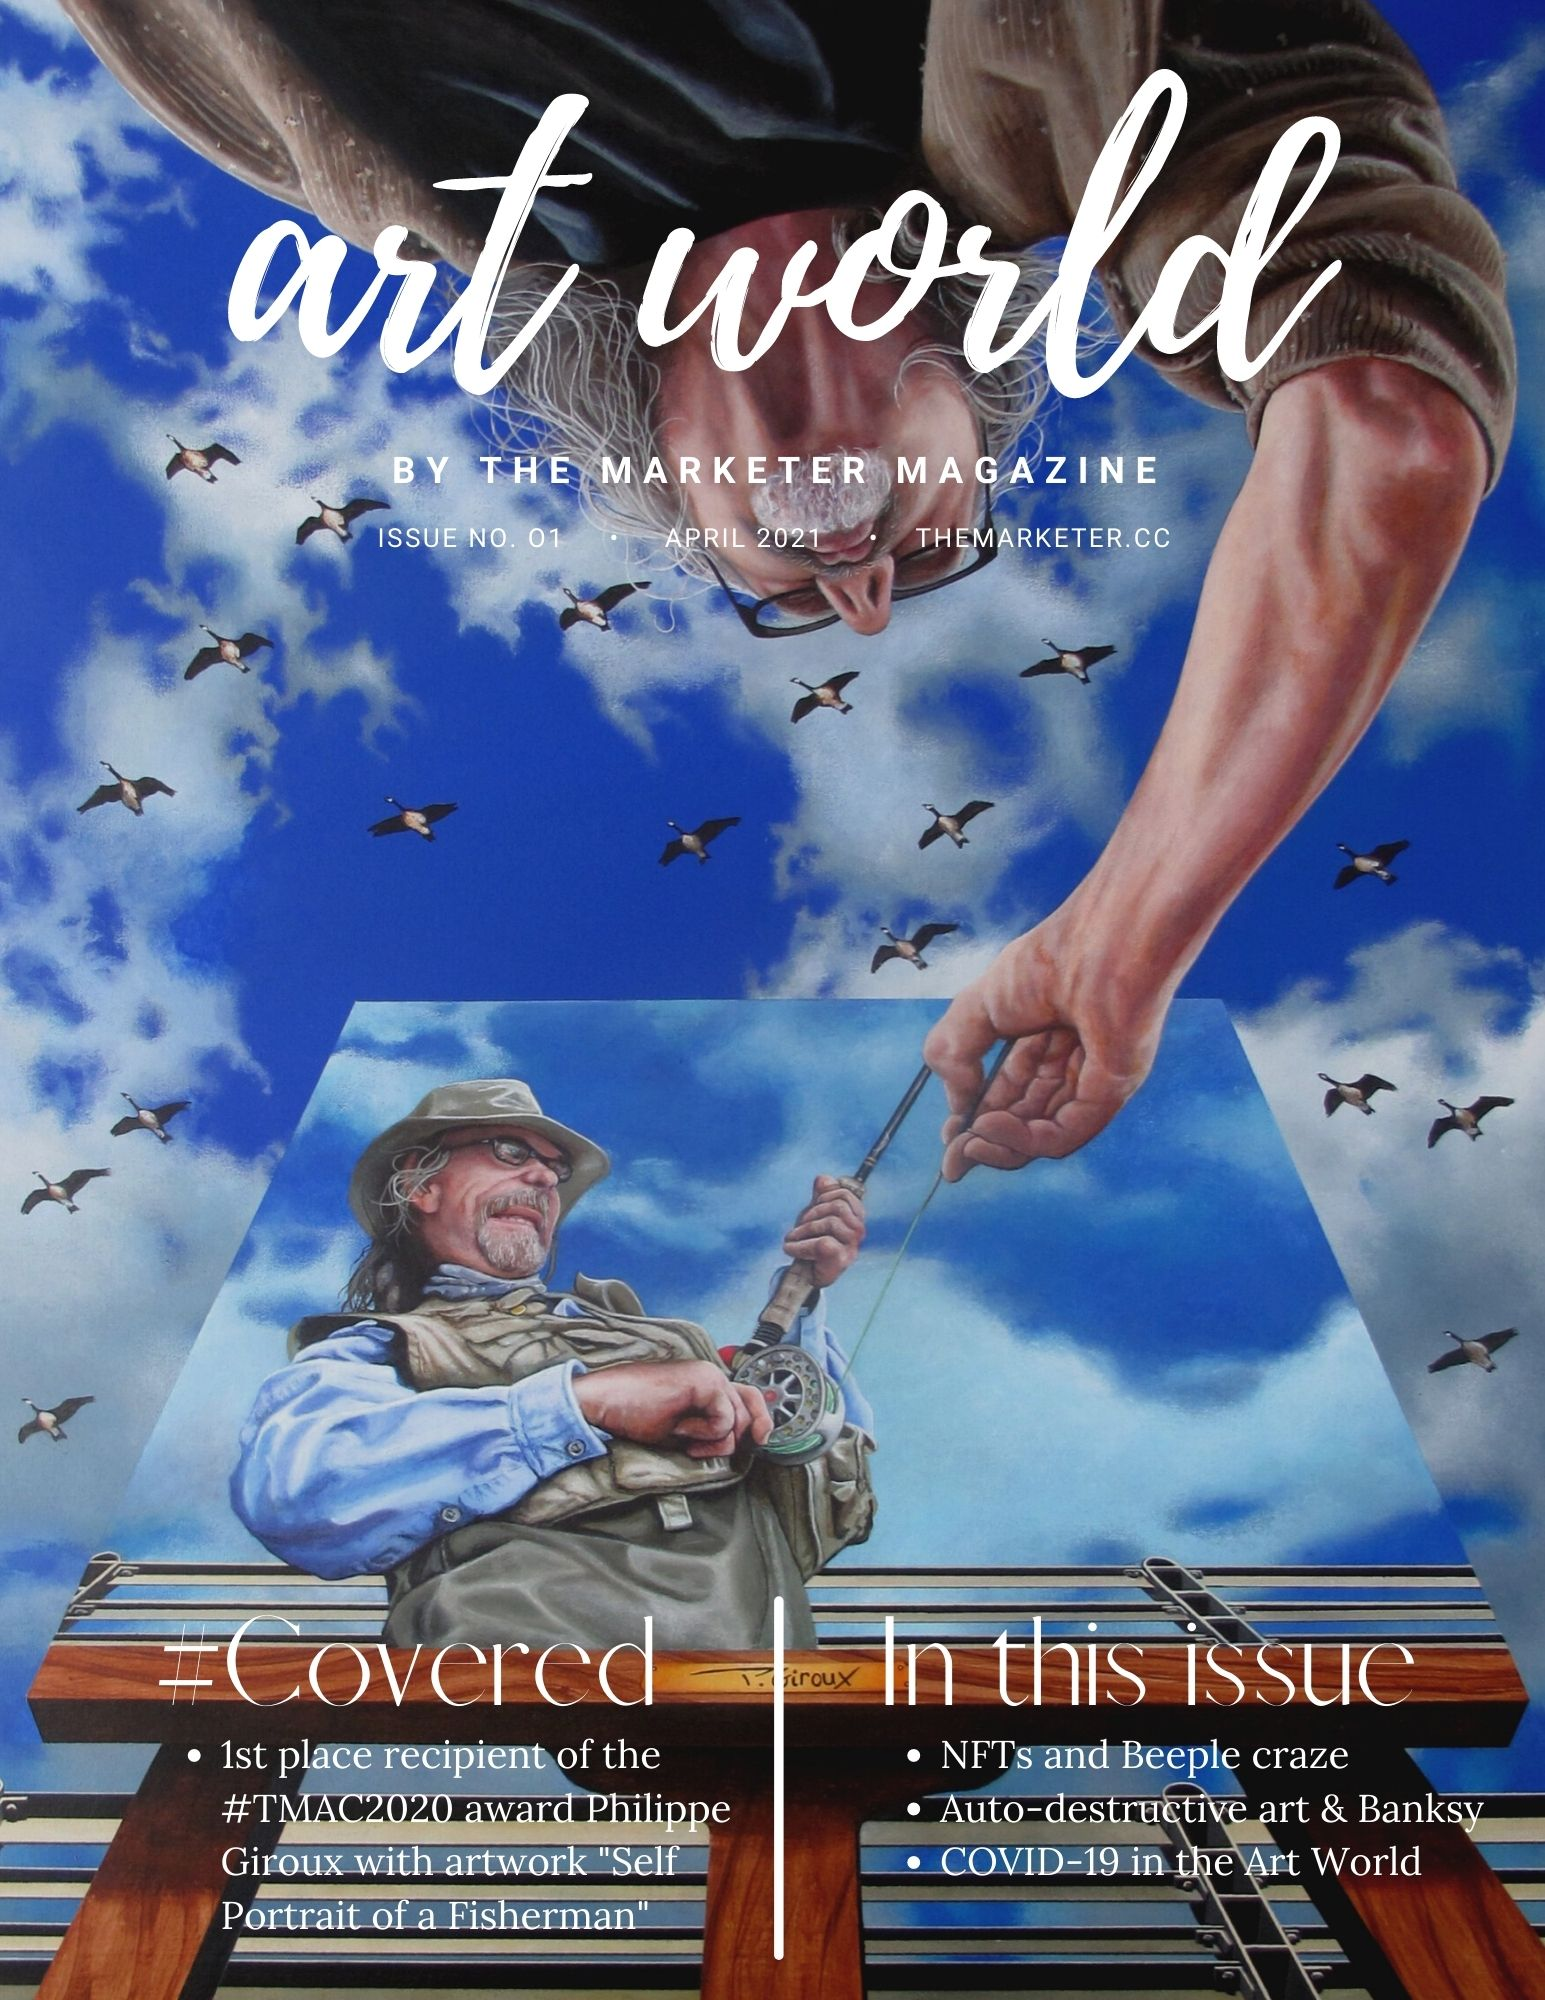 The Cover for The Art World by The Marketer Magazine Volume 1 April 2021